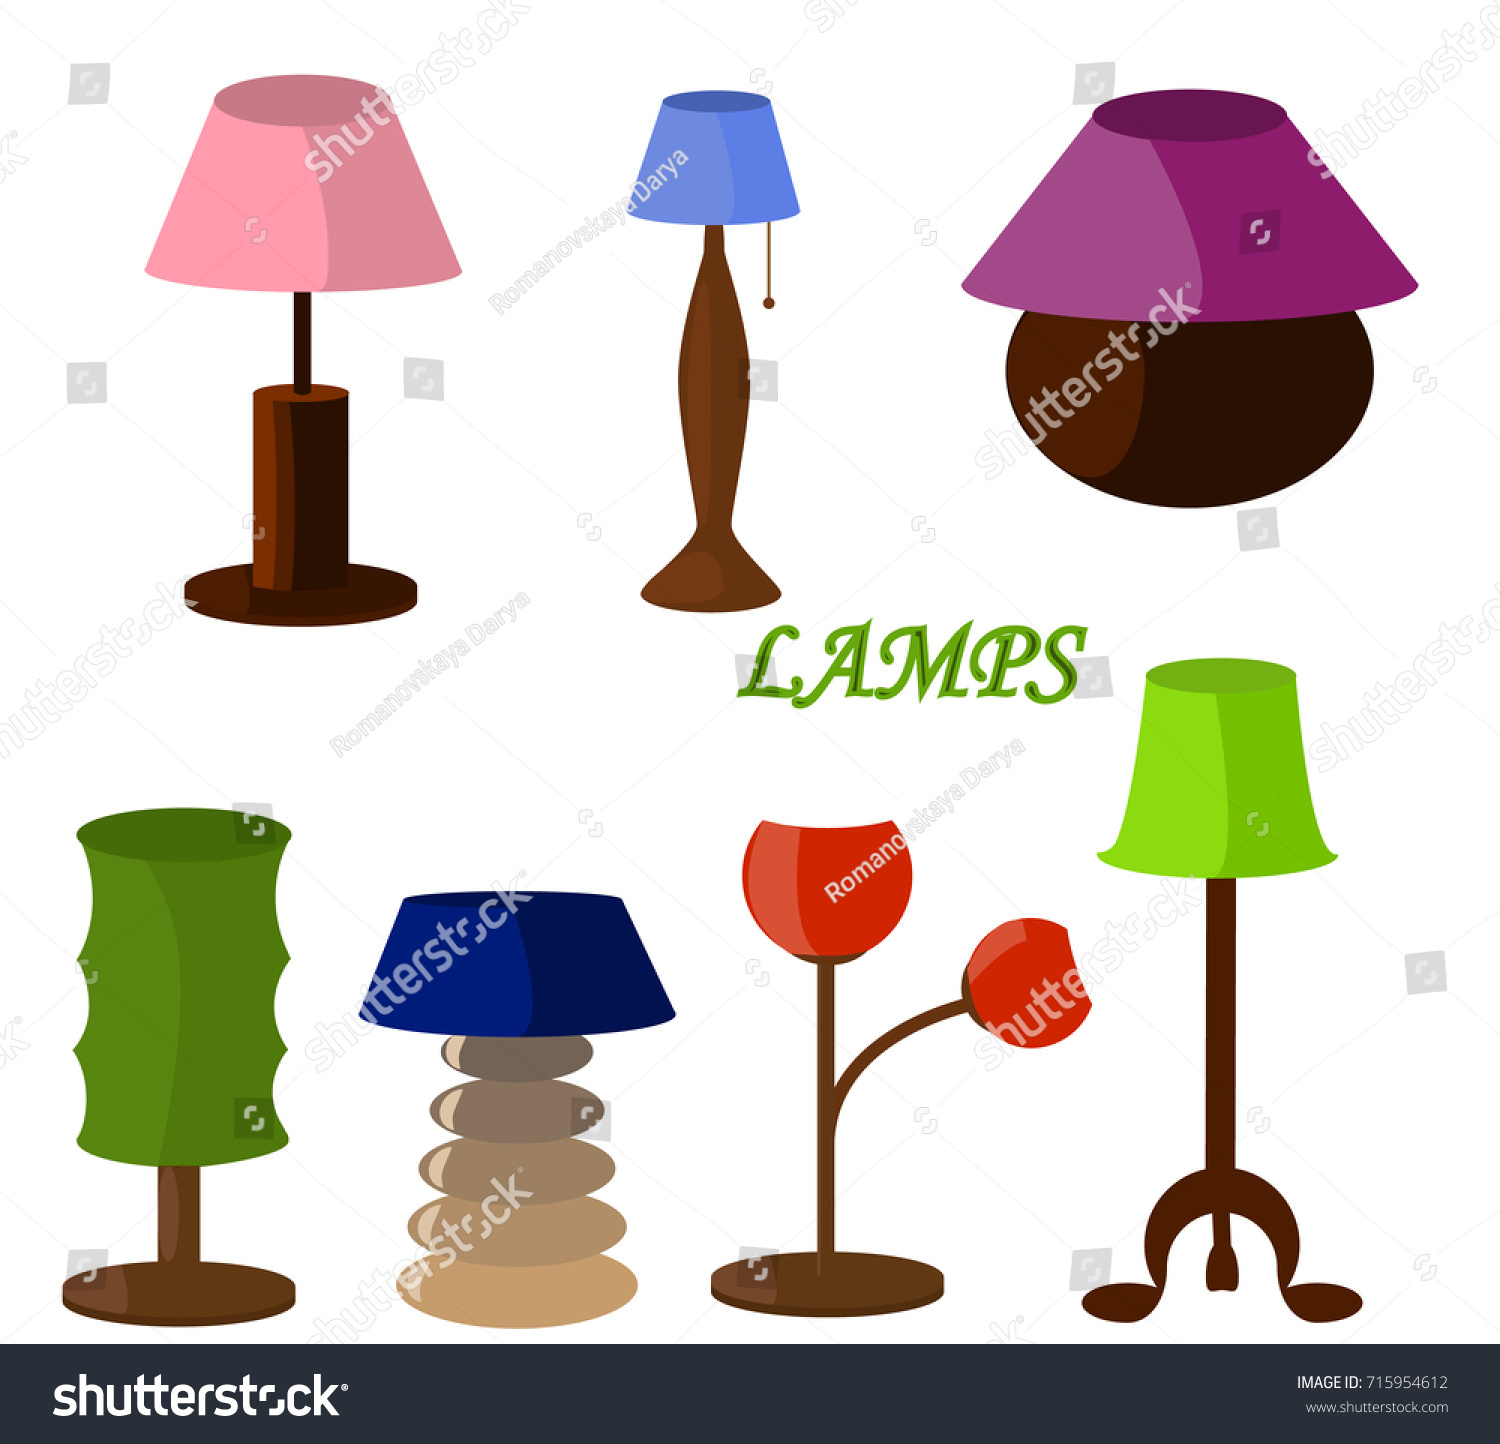 Different kinds lamps bedroom accessories stock vector 715954612 different kinds of lamps bedroom accessories arubaitofo Images